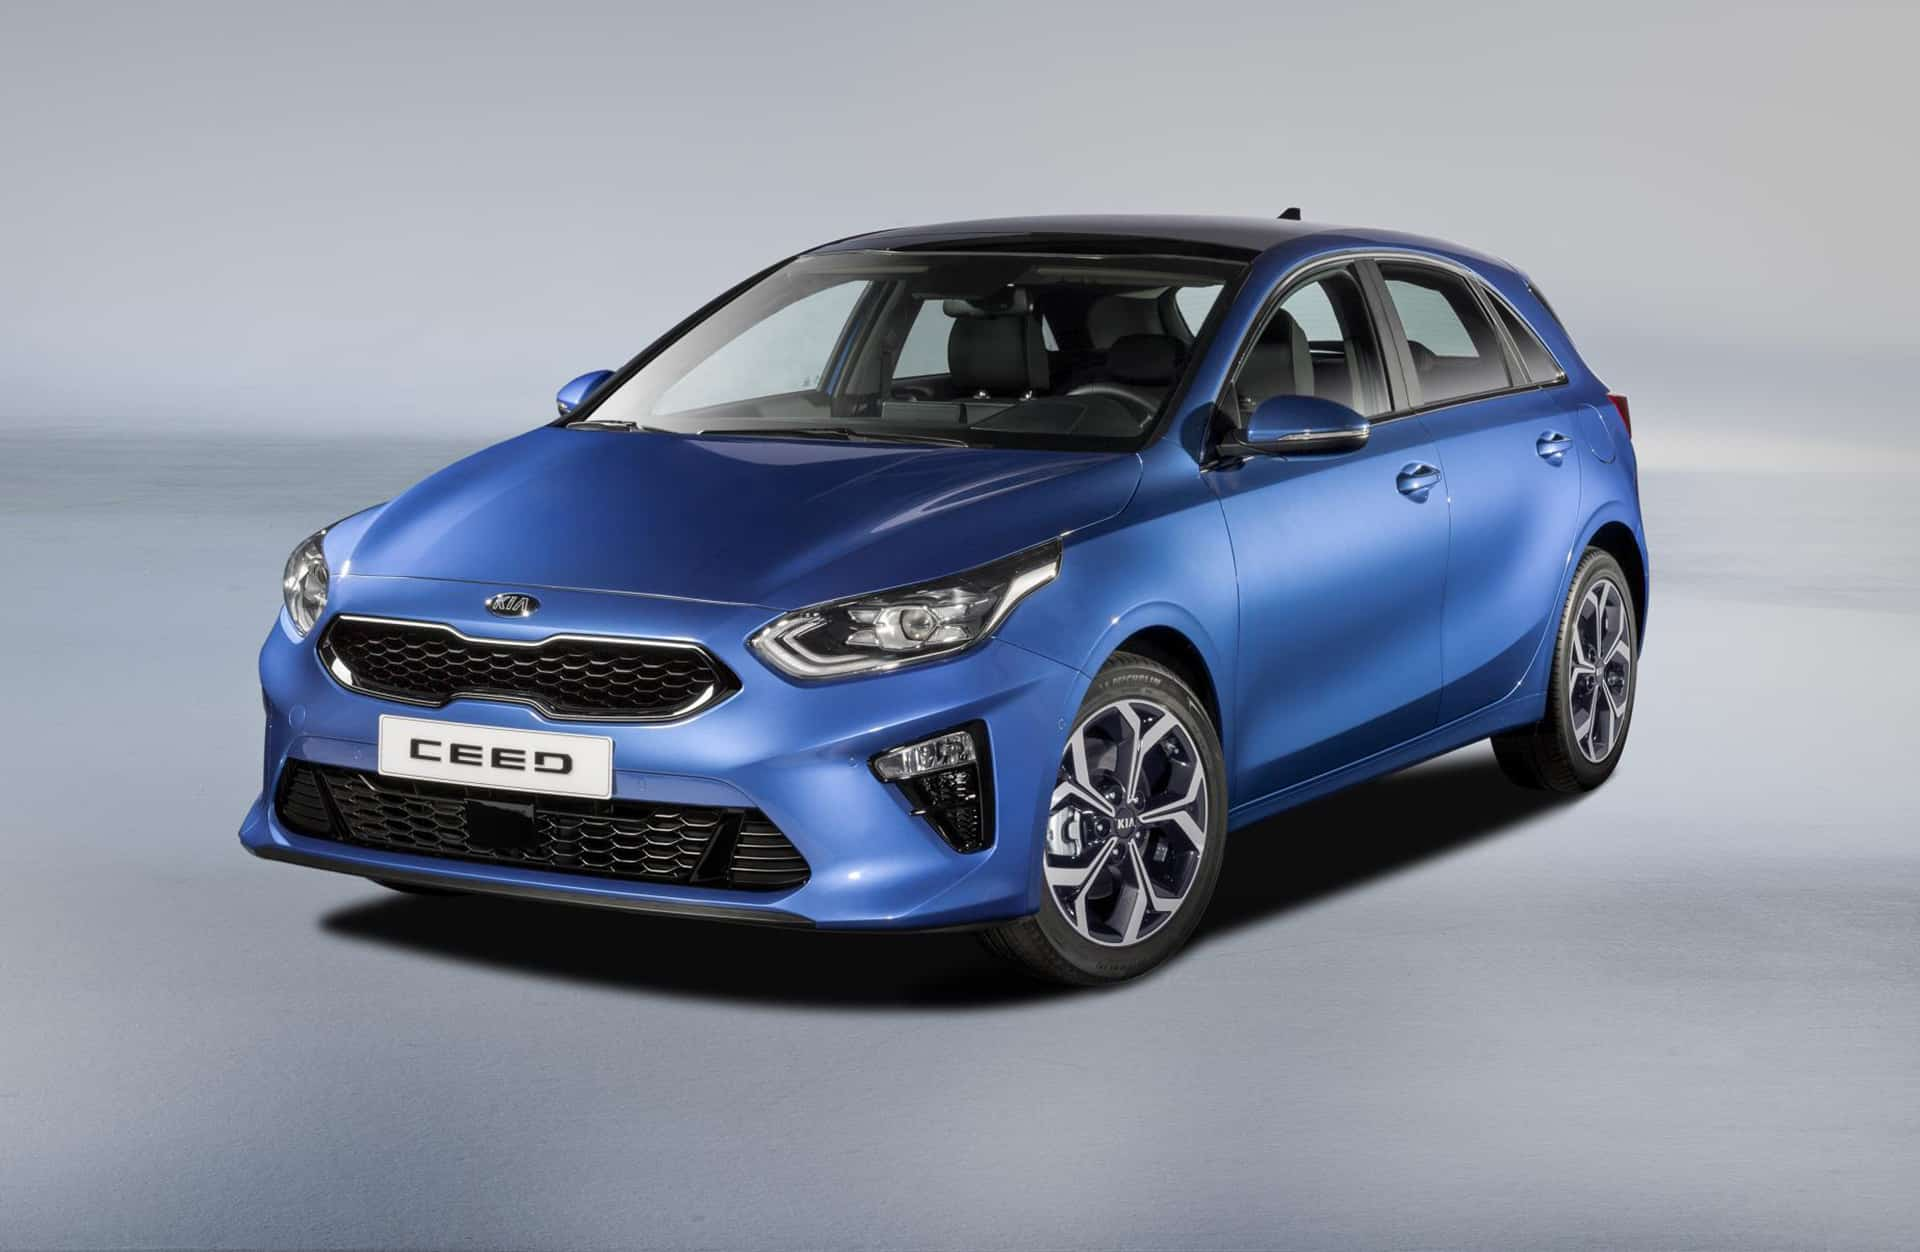 Kia to introduce diesel-hybrid powertrain later this year